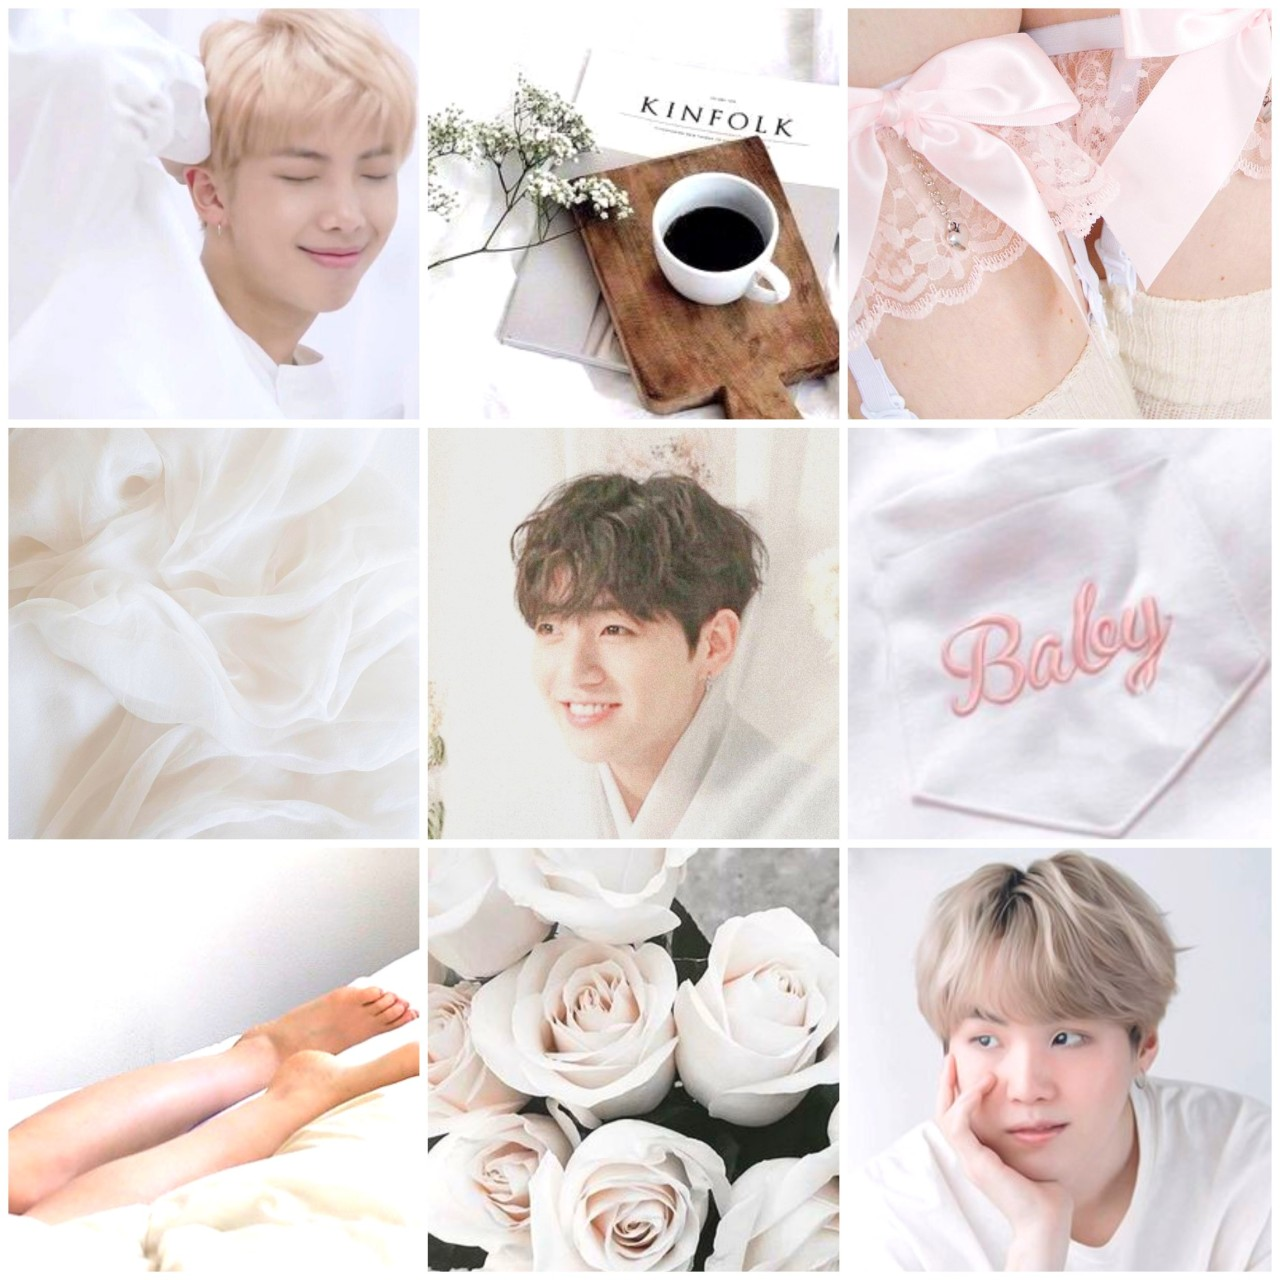 """""""Balance of being held""""  Jungkook is lost in this huge city all alone. Namjoon and Yoongi are here to help him find his home.  Or a story about a boy, who don't know how important it is to have a pack in your life, that meets Namjoon, an alpha of a small pack, and falls for him like you jump in the water: quick, but deep. And then he meets Yoongi, which is a completely different story.   Check it out! #namkook#namgikook#fanfic#namgi#polyamory#demisexuality#pack dynamics#taejin#jihope#bts fanfic#jungkook#namjoon#yoongi"""